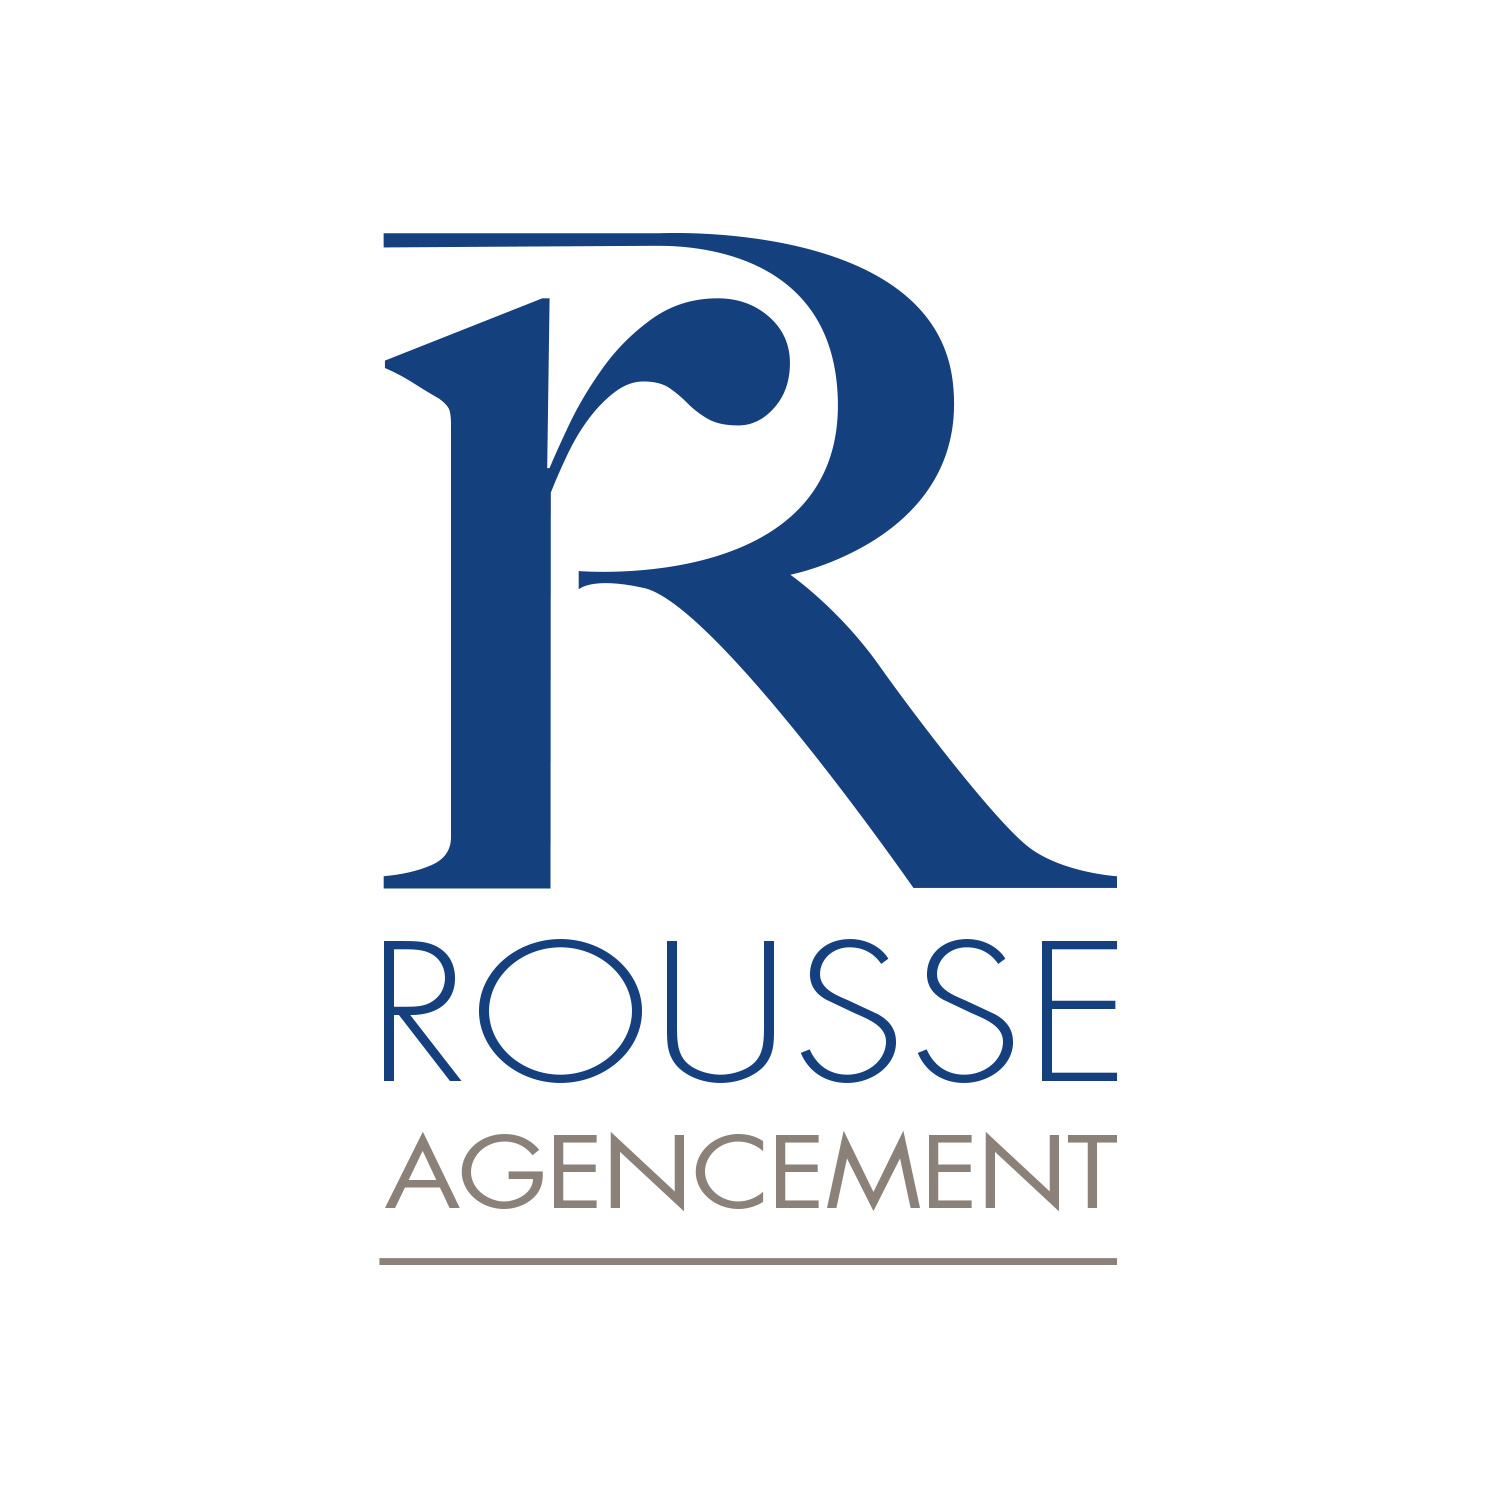 Logo Rousse Agencement